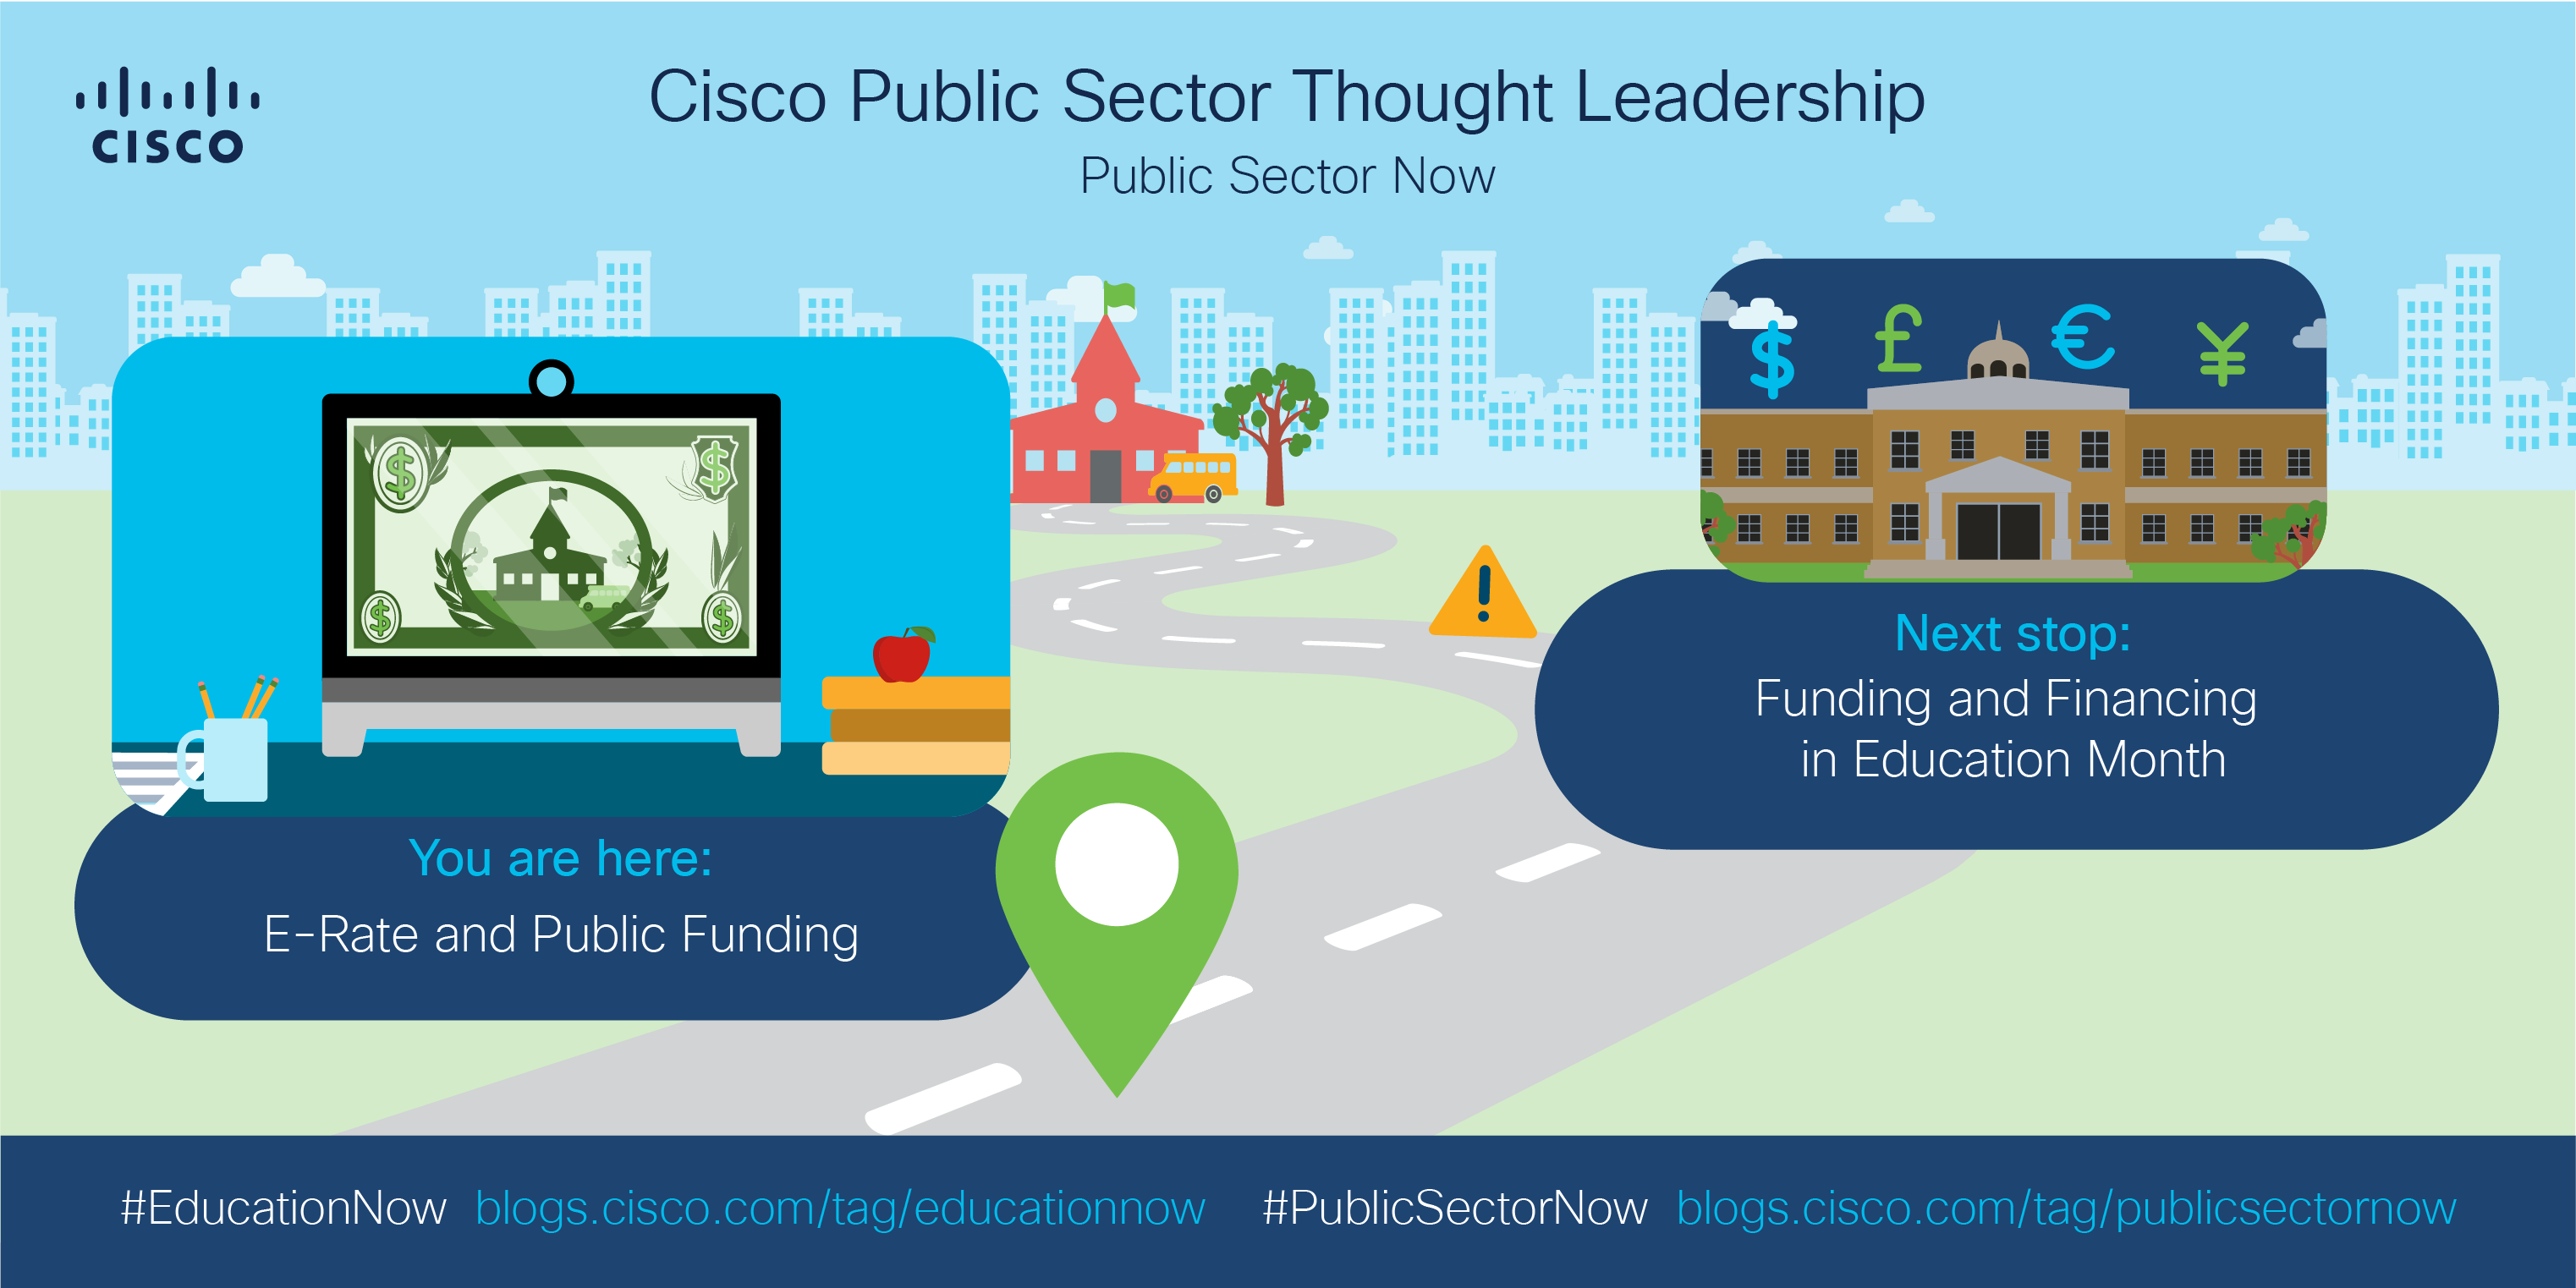 Current stop: E-Rate and Public Founding, Next Stop: Funding and Financing in Education Month